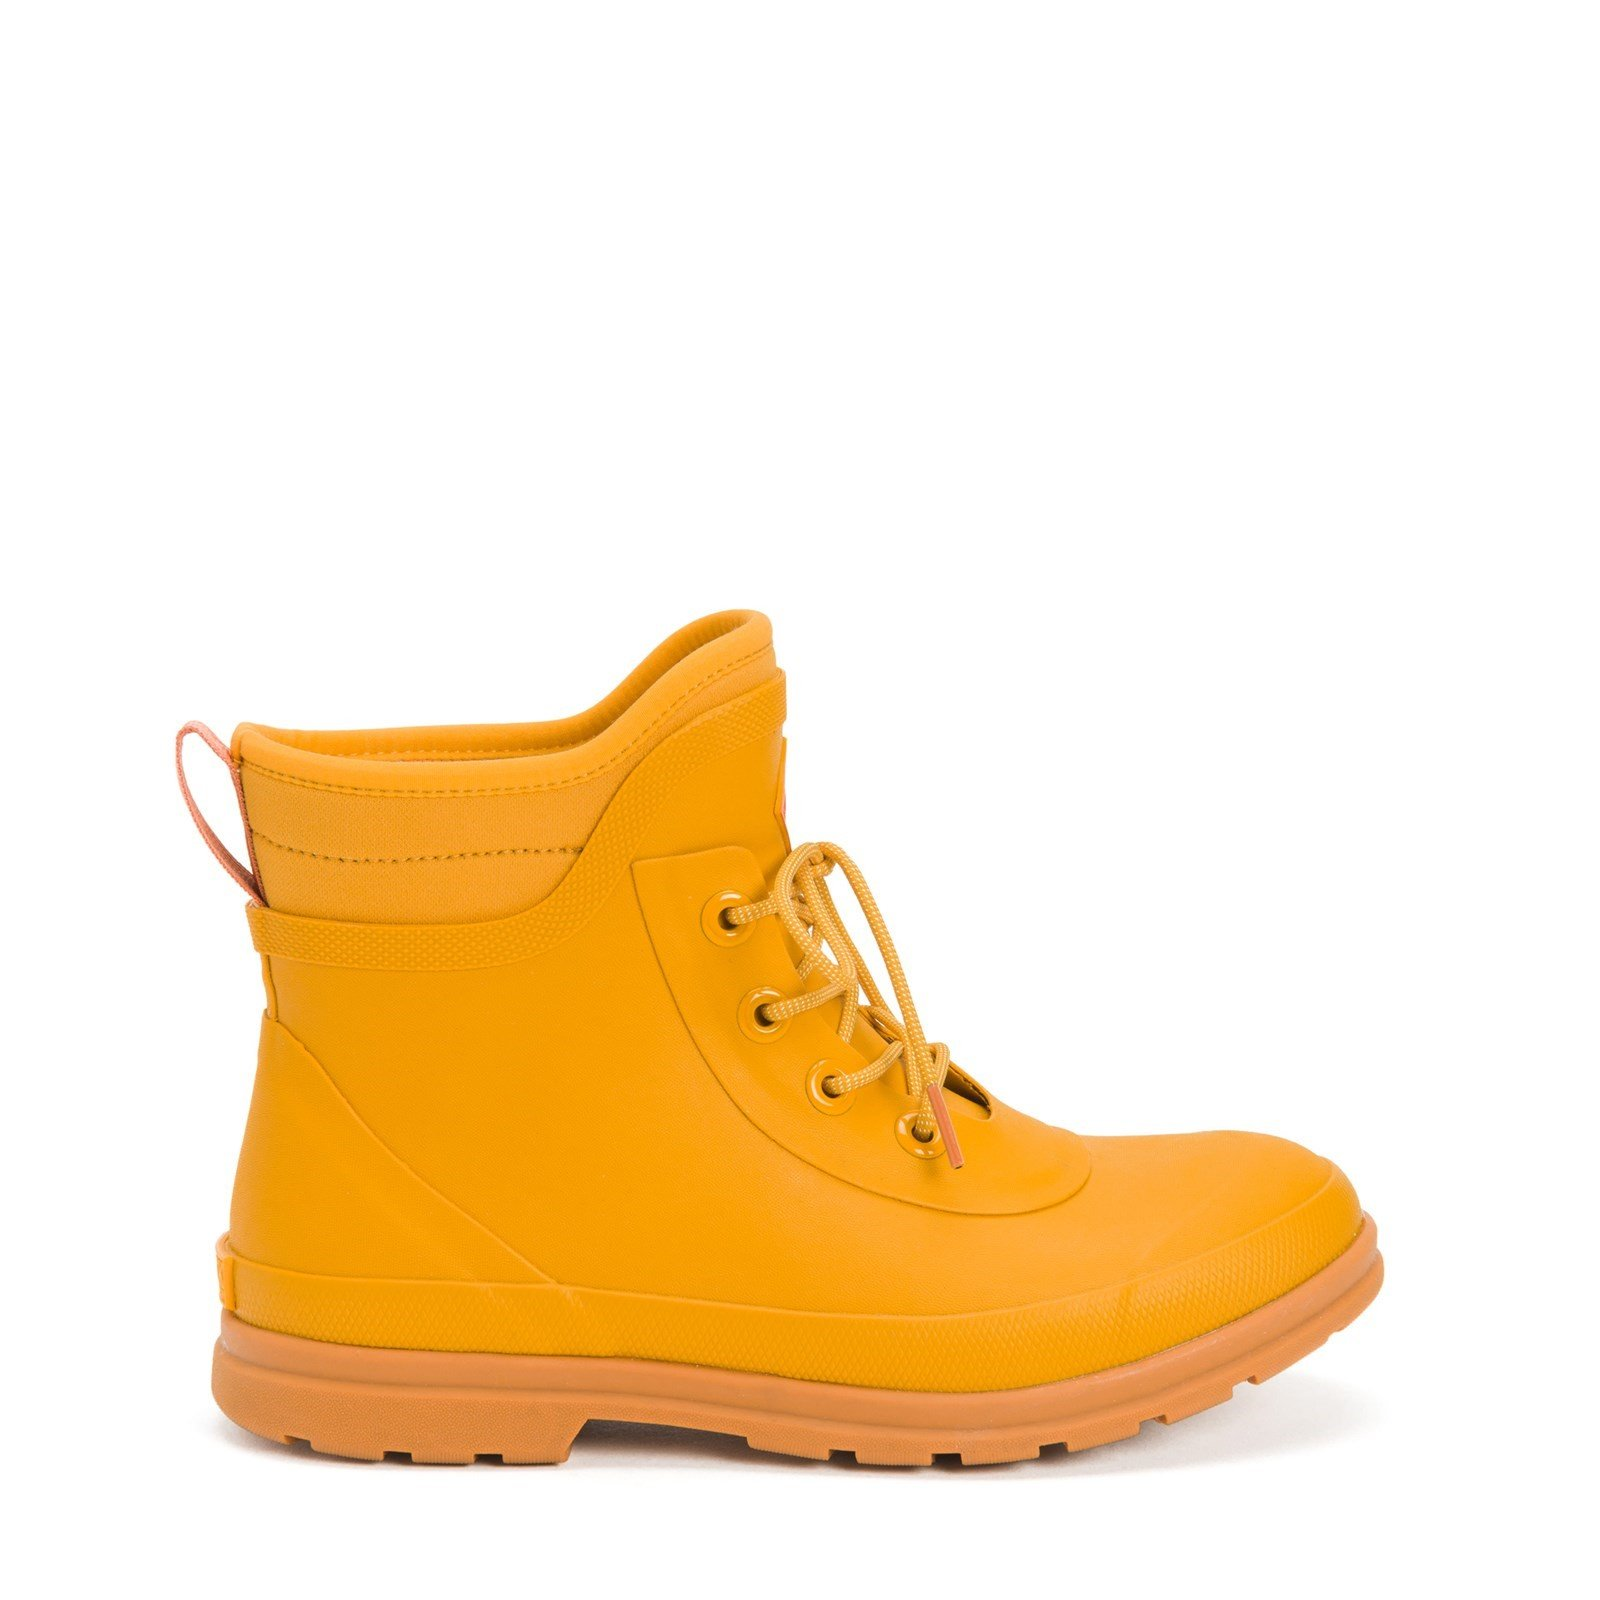 Muck Boots Women's Originals Lace Up Ankle Boot Various Colours 30079 - Sunflower 4